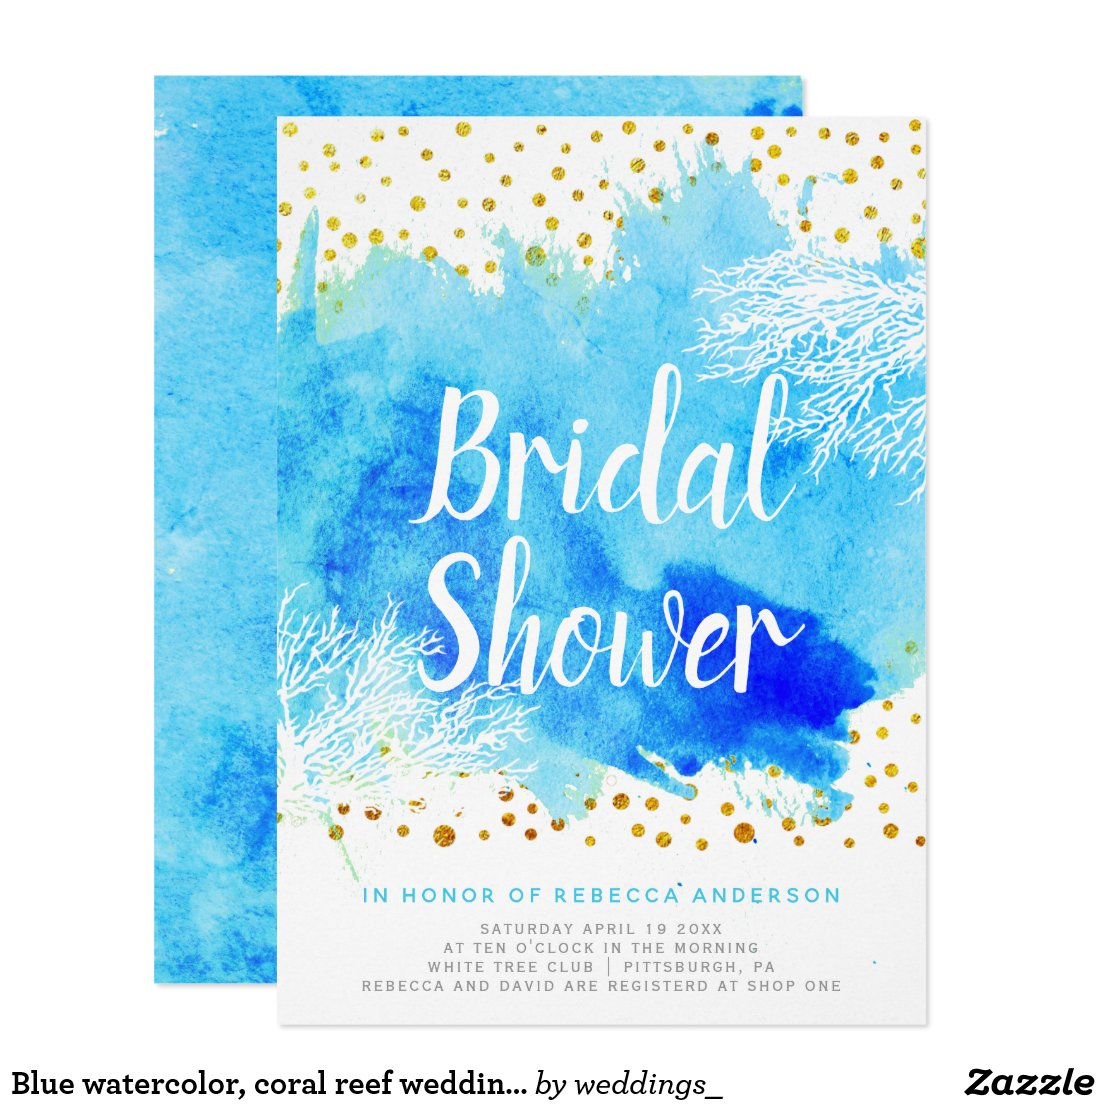 Blue watercolor, coral reef wedding bridal shower card